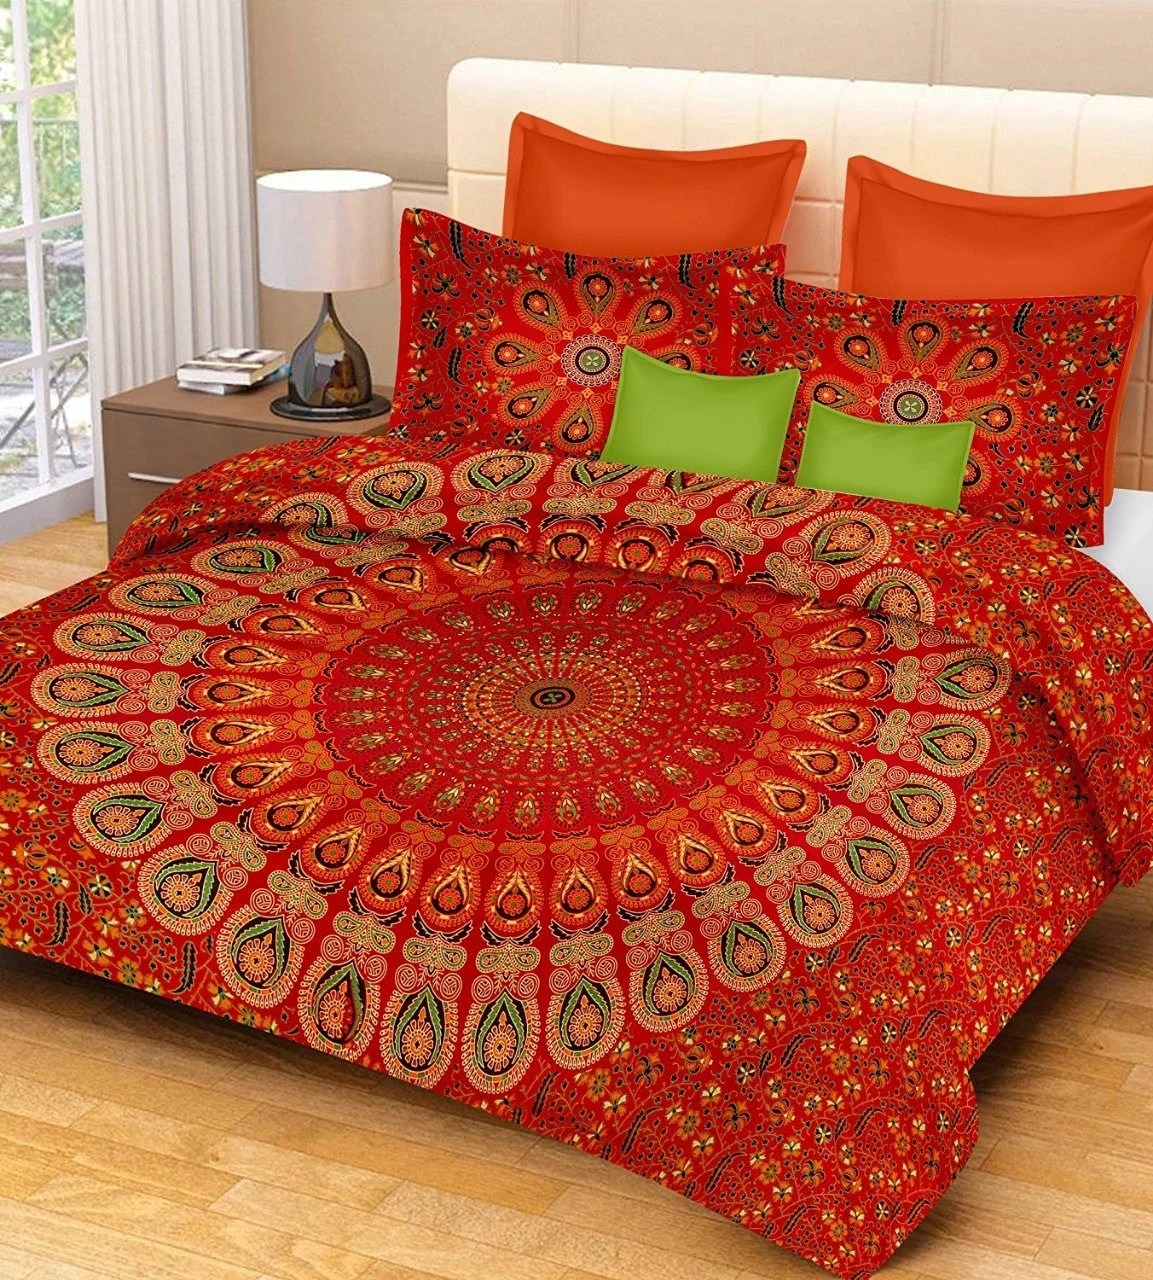 Boho Quilt Covers Australia Queen Or King Size Mandala Duvet Cover Boho Quilt Cover With Pillow Cases Doona Cover Bohemian Handmade Reversible Bedding Cover Set